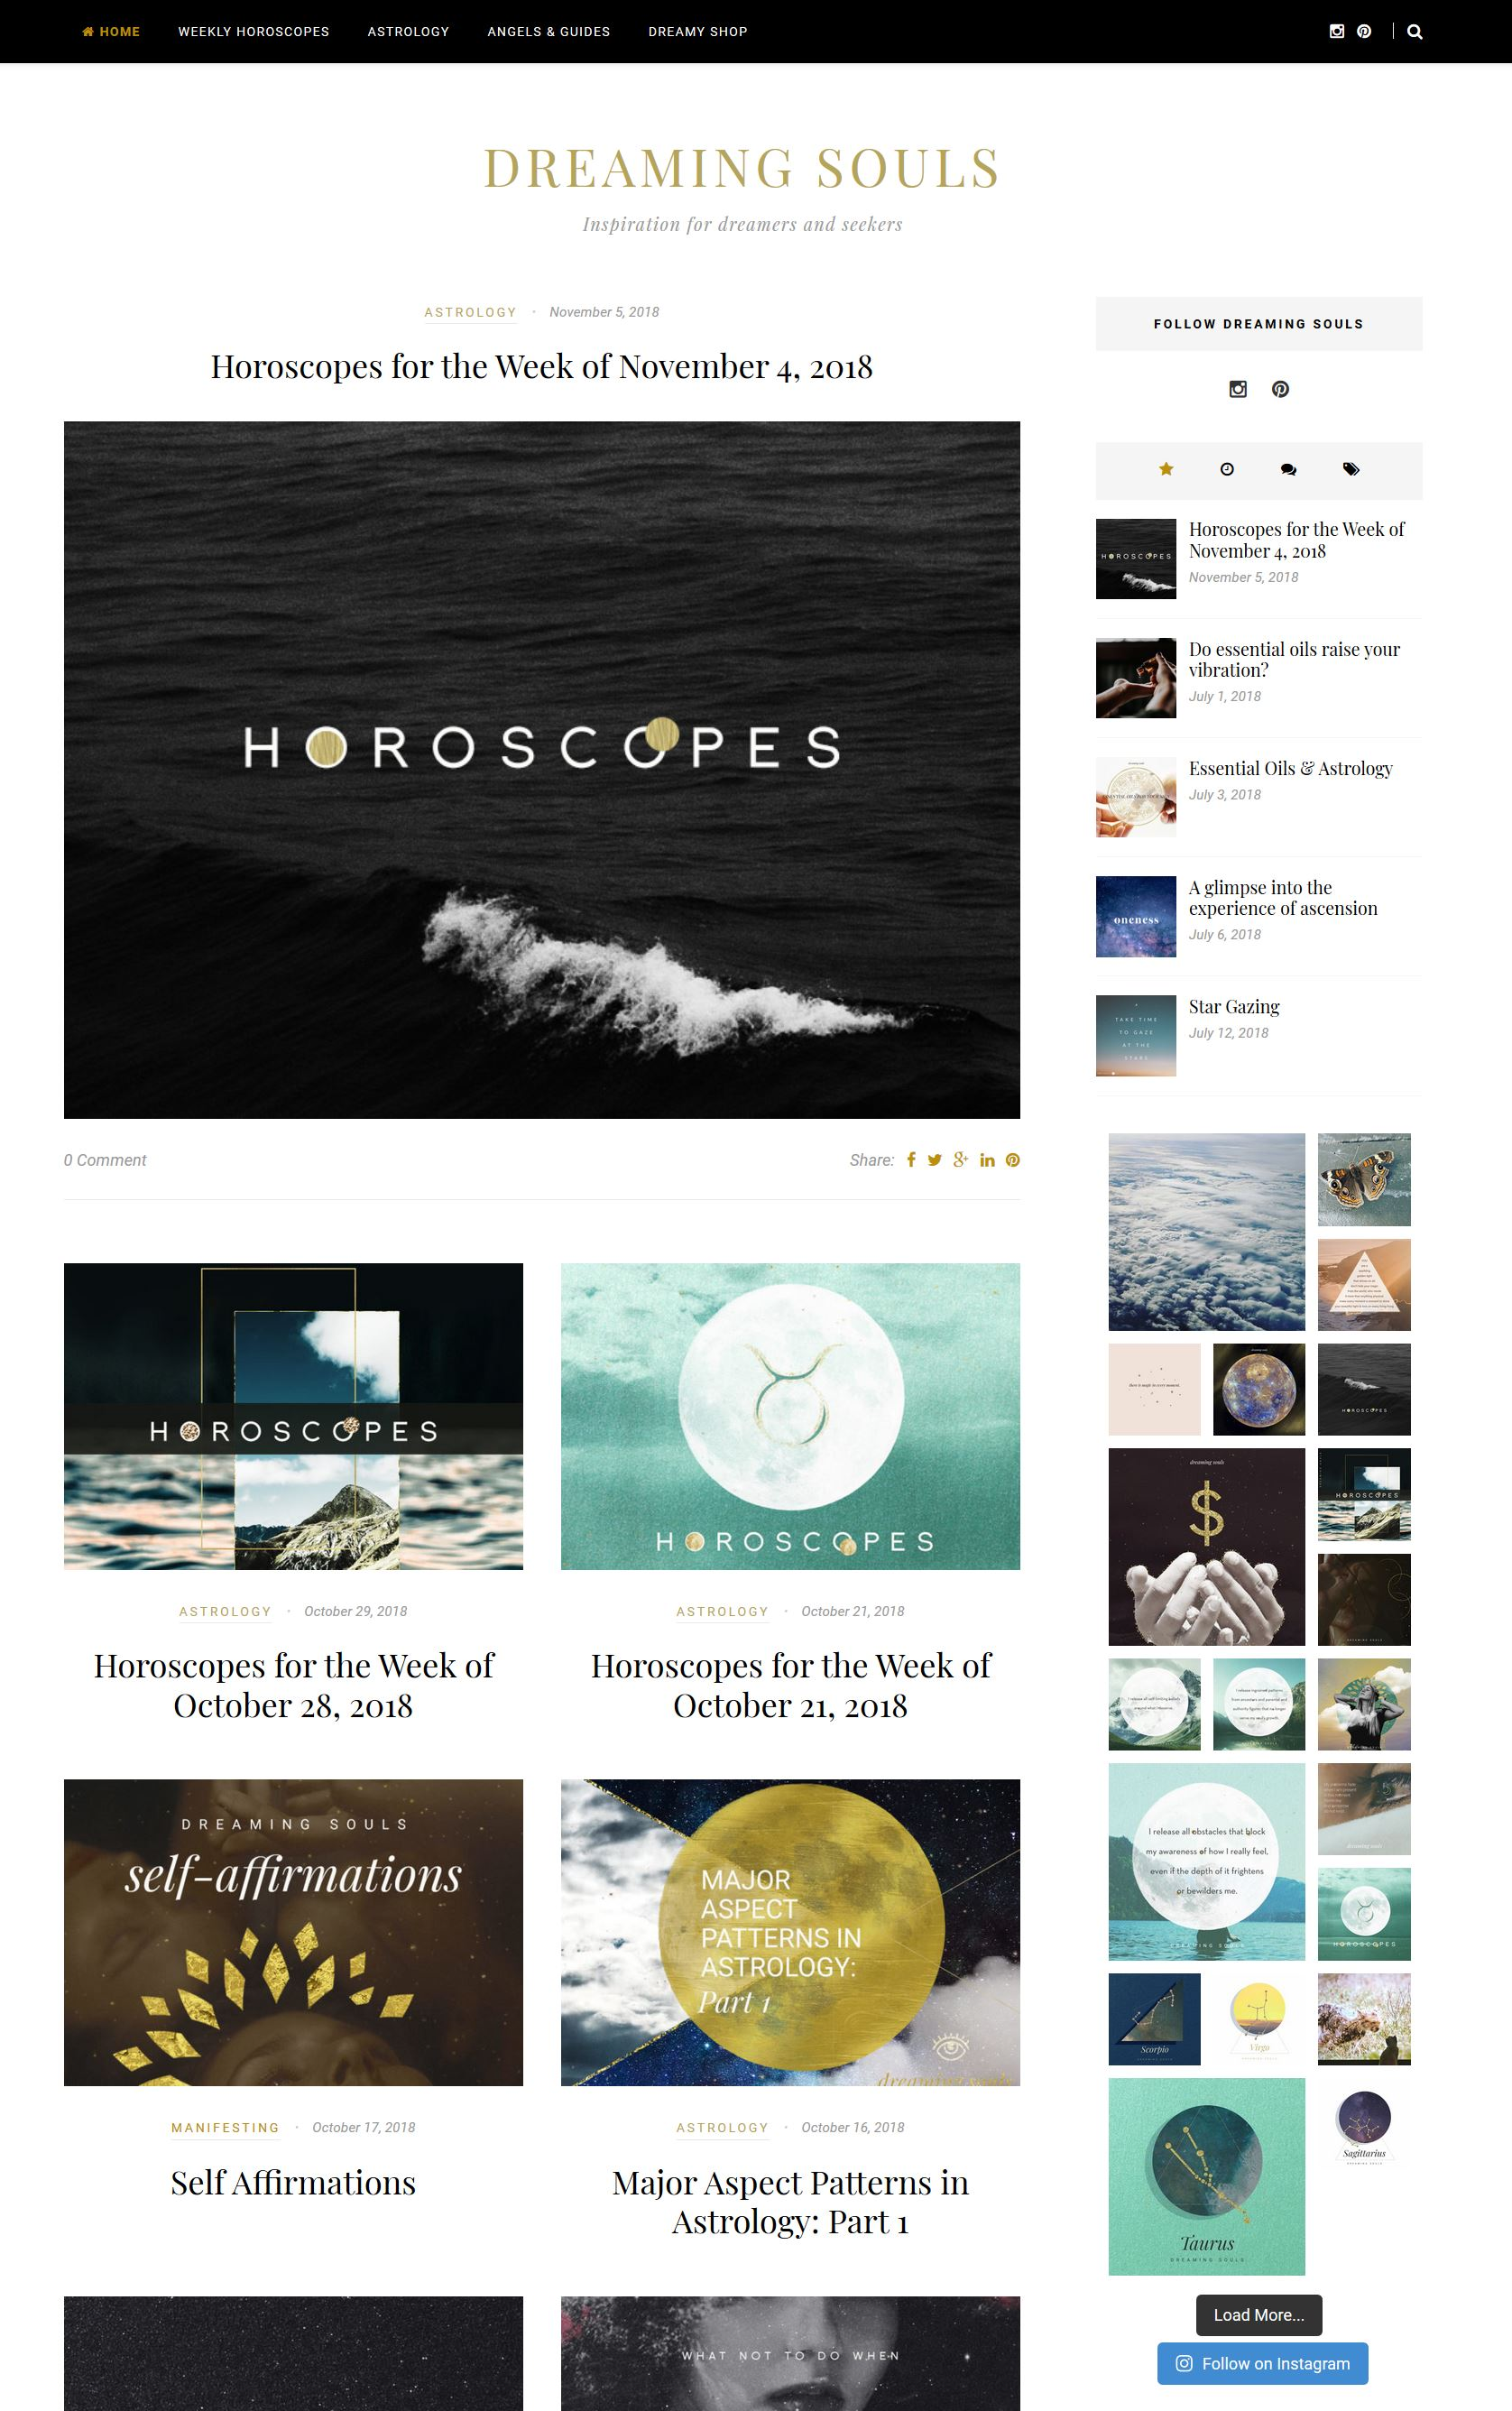 Astrology & Horoscope Website Design - Created this site from scratch - from buying the domain name to creating affiliate accounts.  Designed all artwork on site and sourced writers for Astrology & spiritual content.